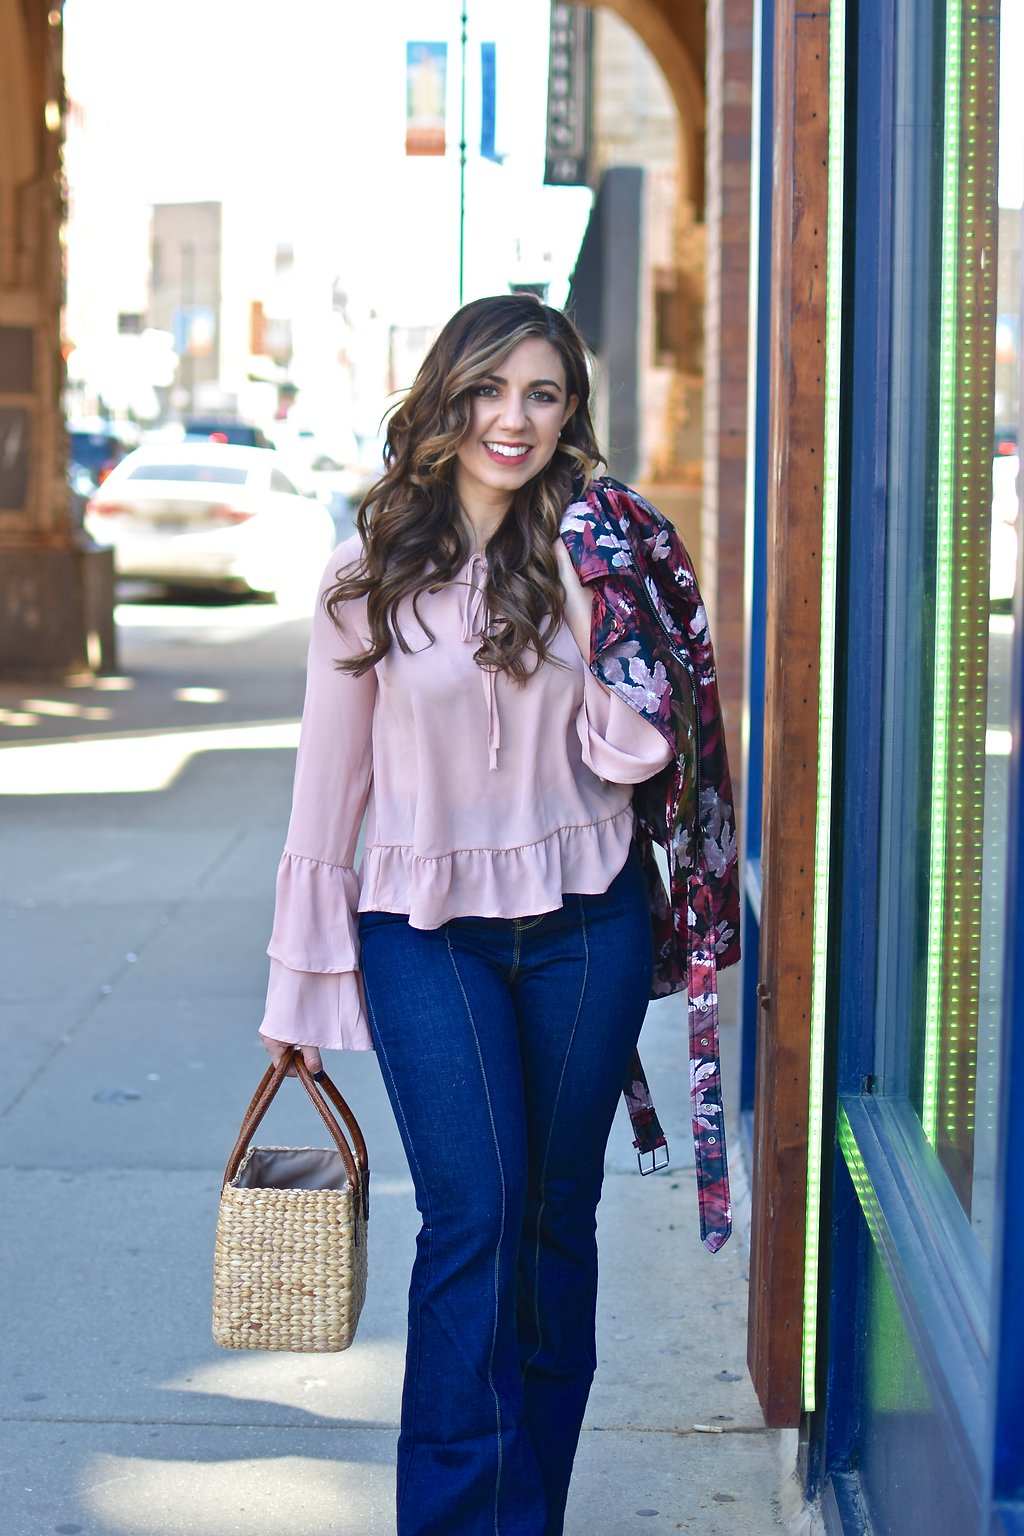 Lifestyle blogger Roxanne of Glass of glam wearing Modcloth flares, a Le Tote Jacket, Lulus blouse, and a straw bag - Le Tote Is Totes Amazing by popular Chicago style blogger Glass of Glam